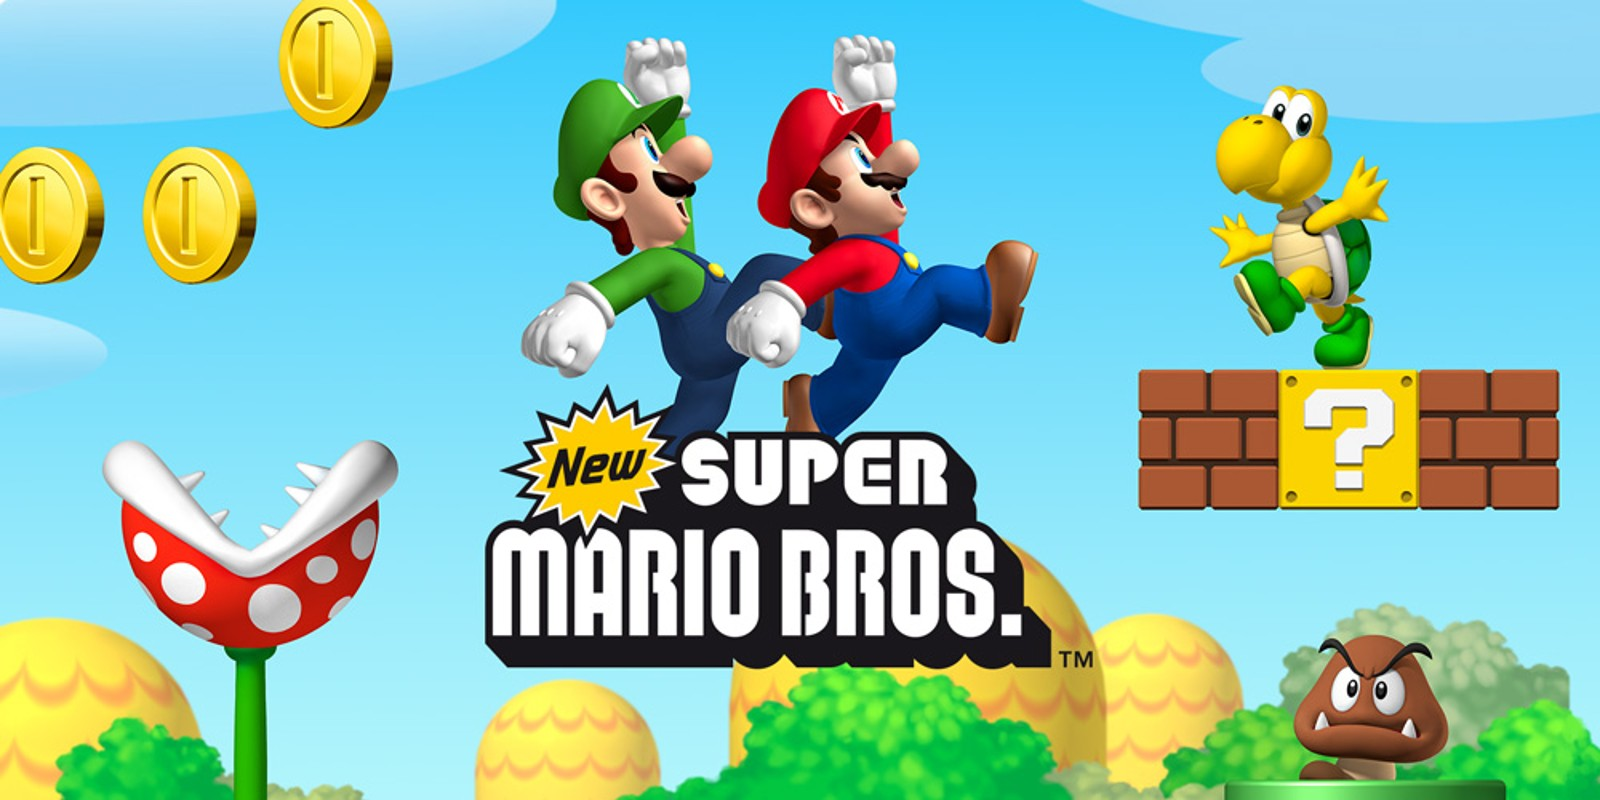 Super Mario Bros: Nintendo Spoils A Work Of Art To Preserve Exclusivity